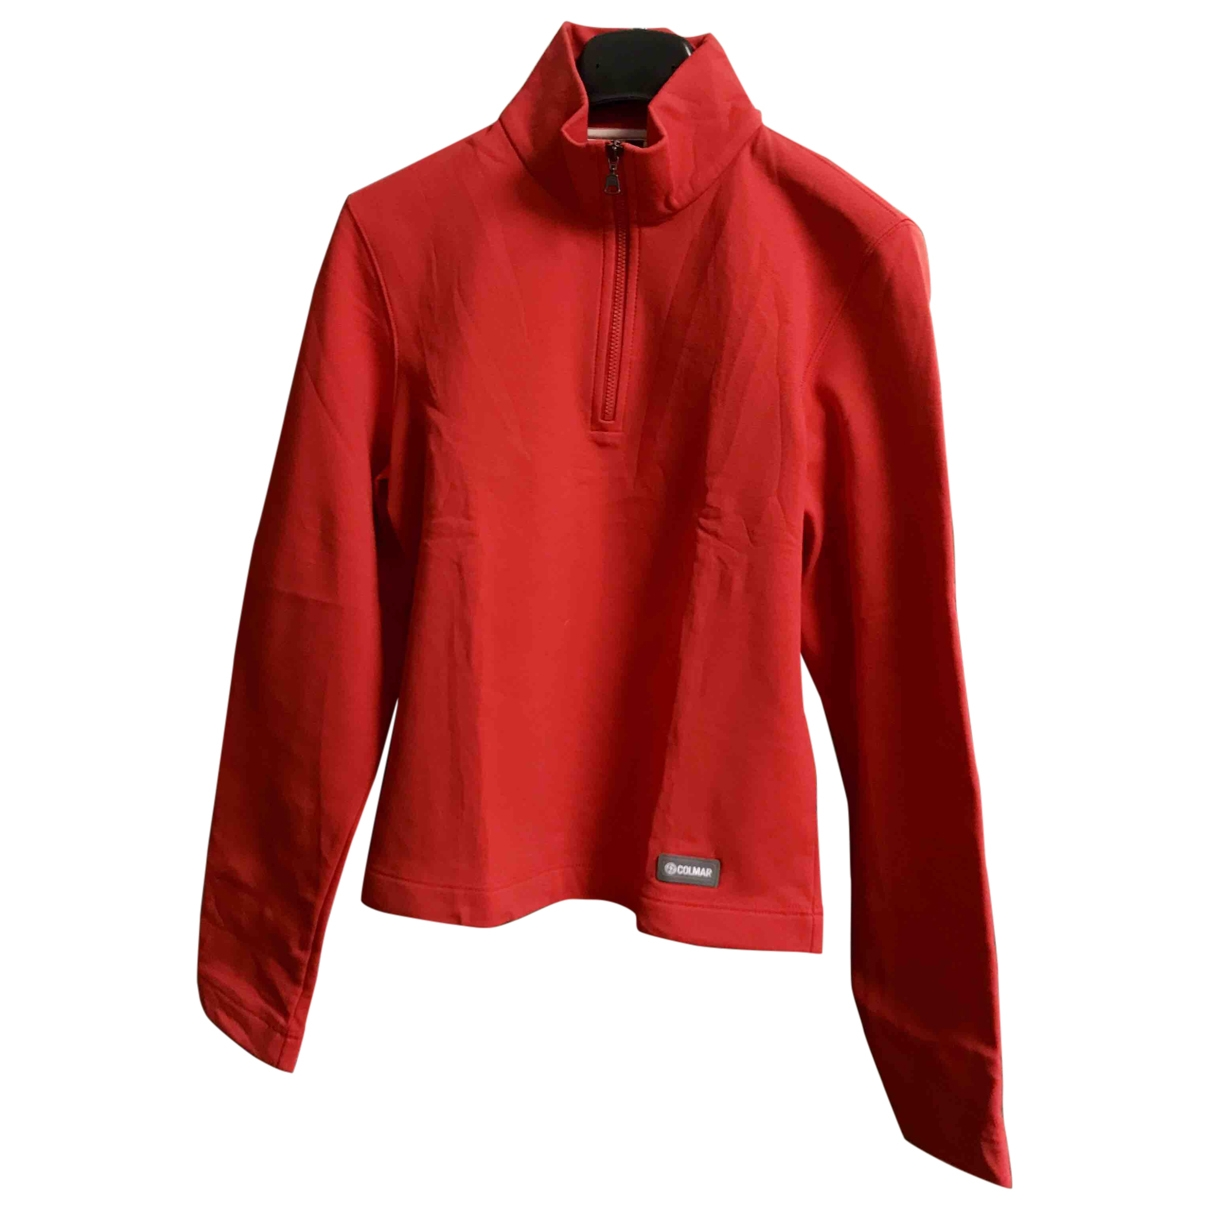 Colmar \N Pullover in  Rot Polyester